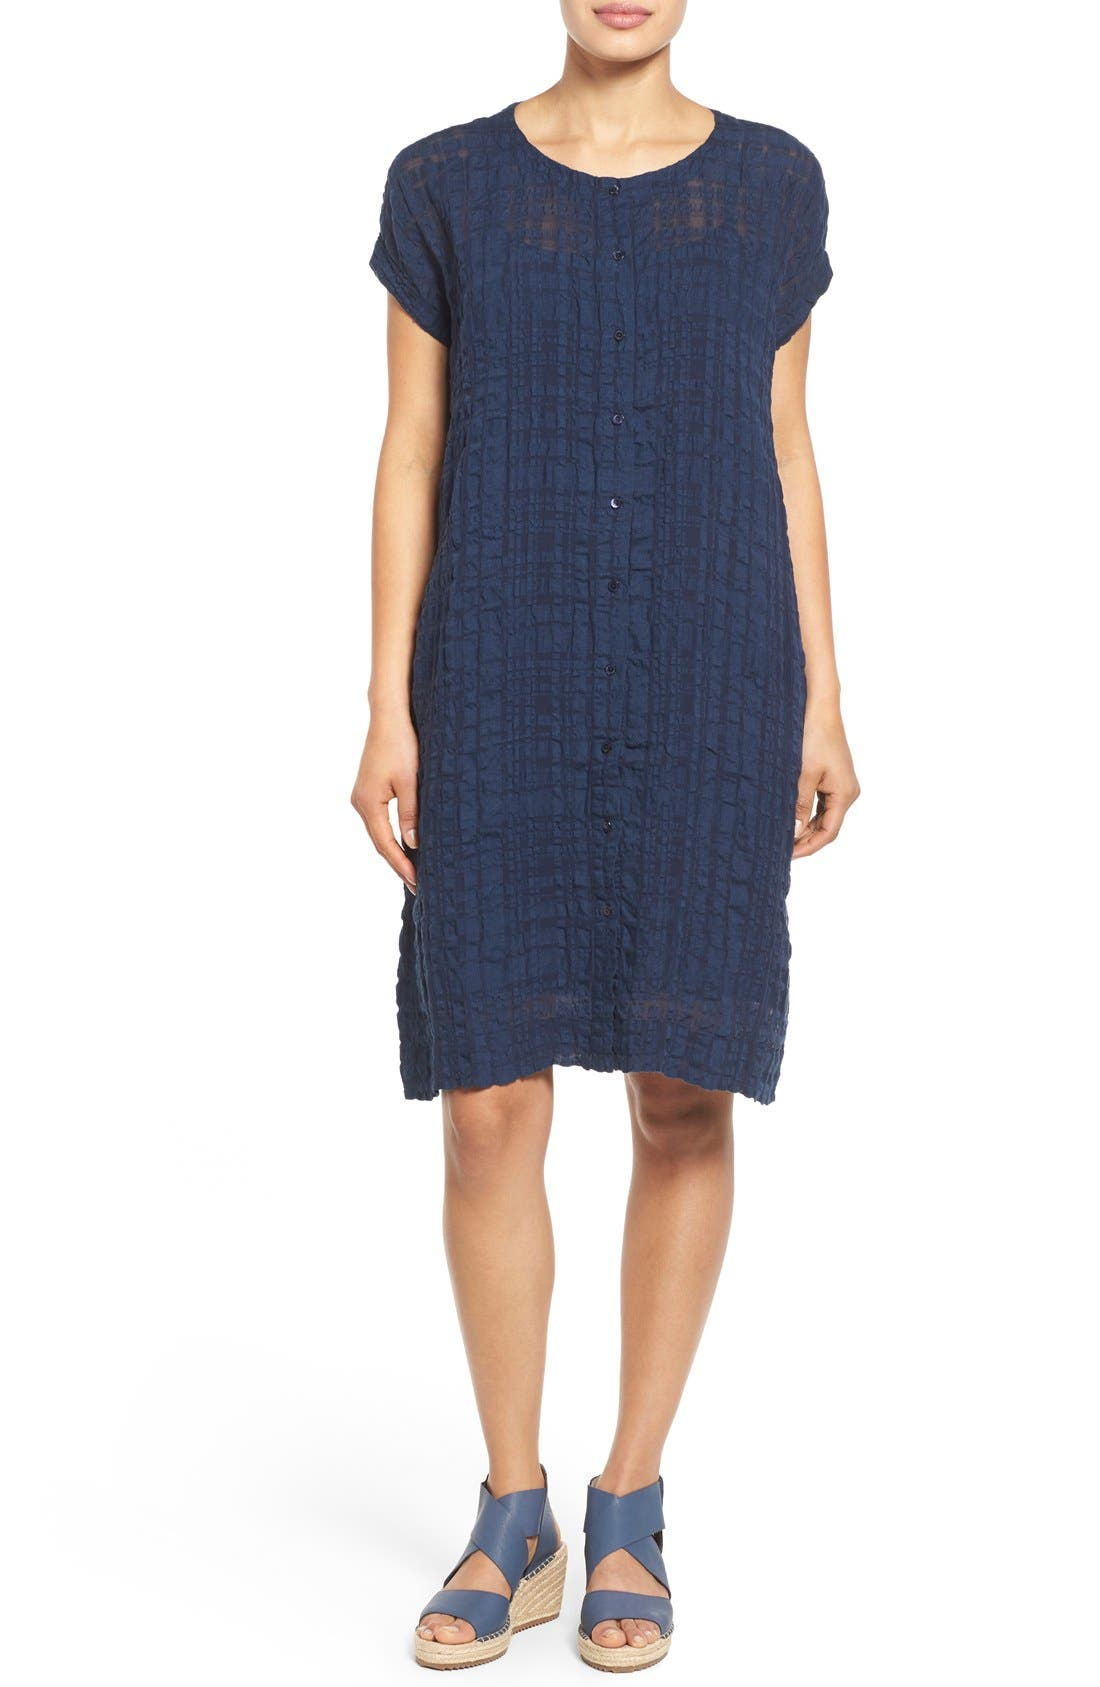 Alternate Image 1 Selected - Eileen Fisher Button Front Boxy Dress (Regular & Petite)